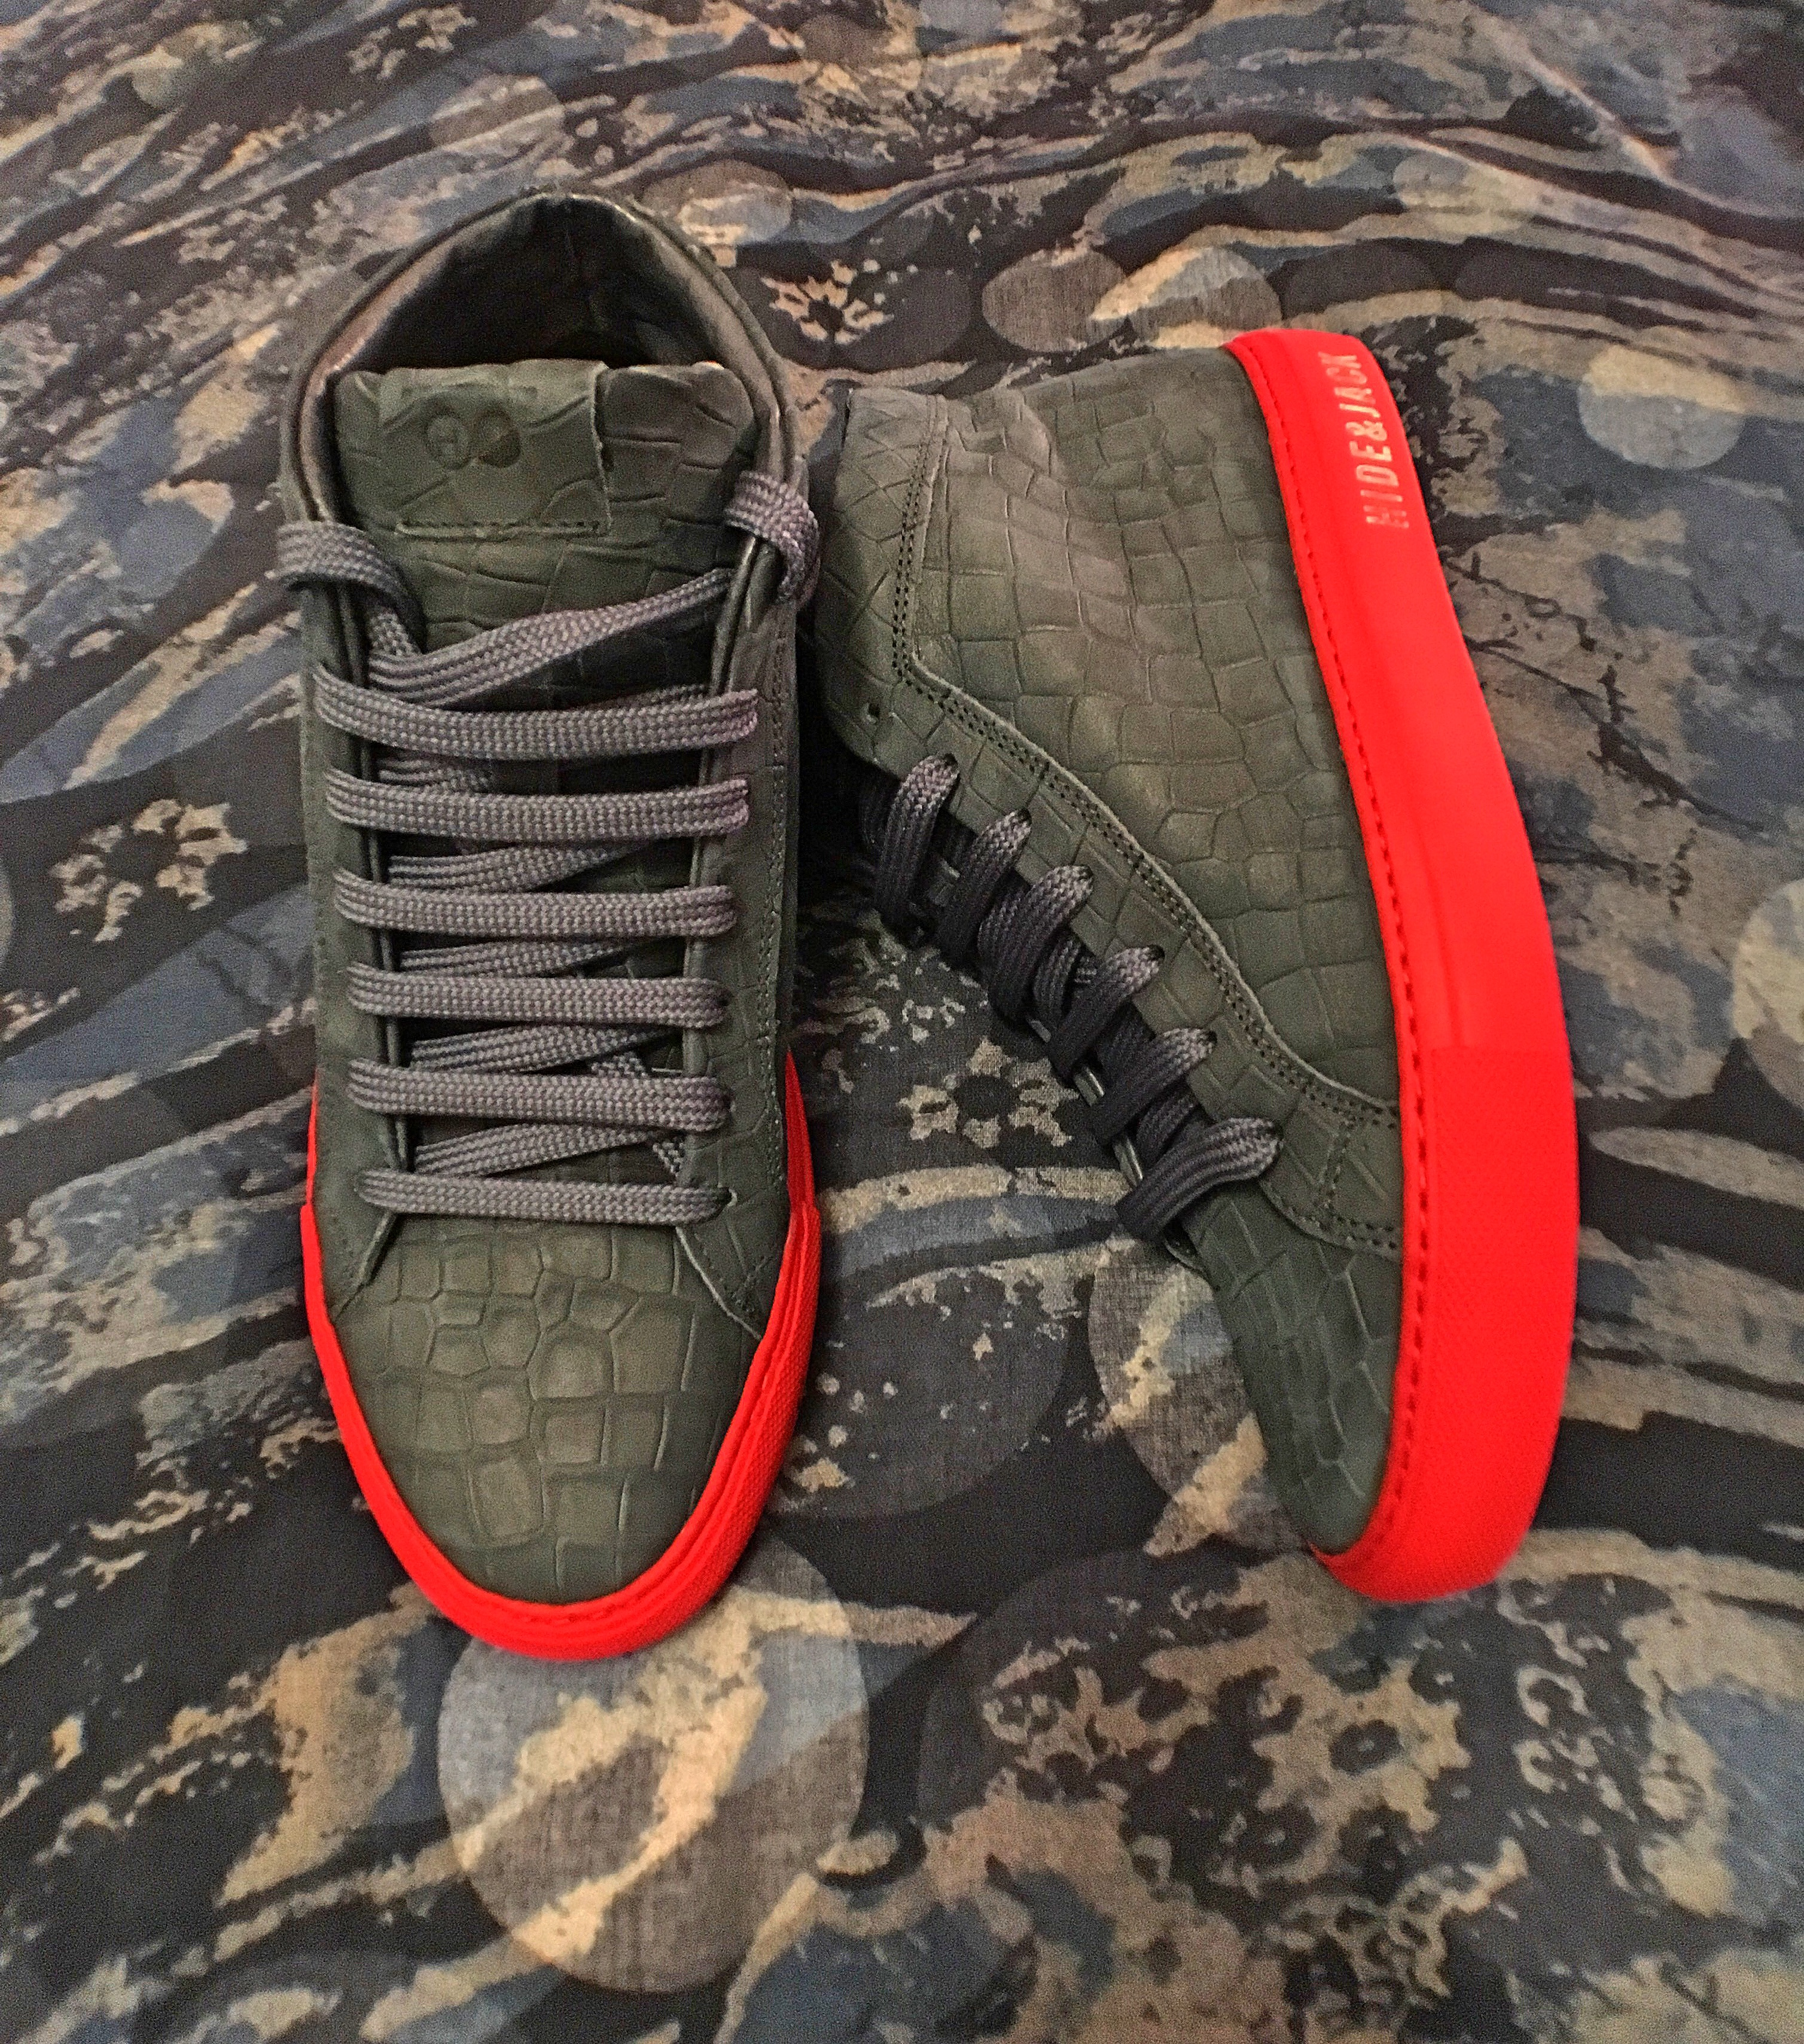 HIGH TOP SNEAKERS BLUE NUBUCK WITH RED SOLE hide&jack (2)